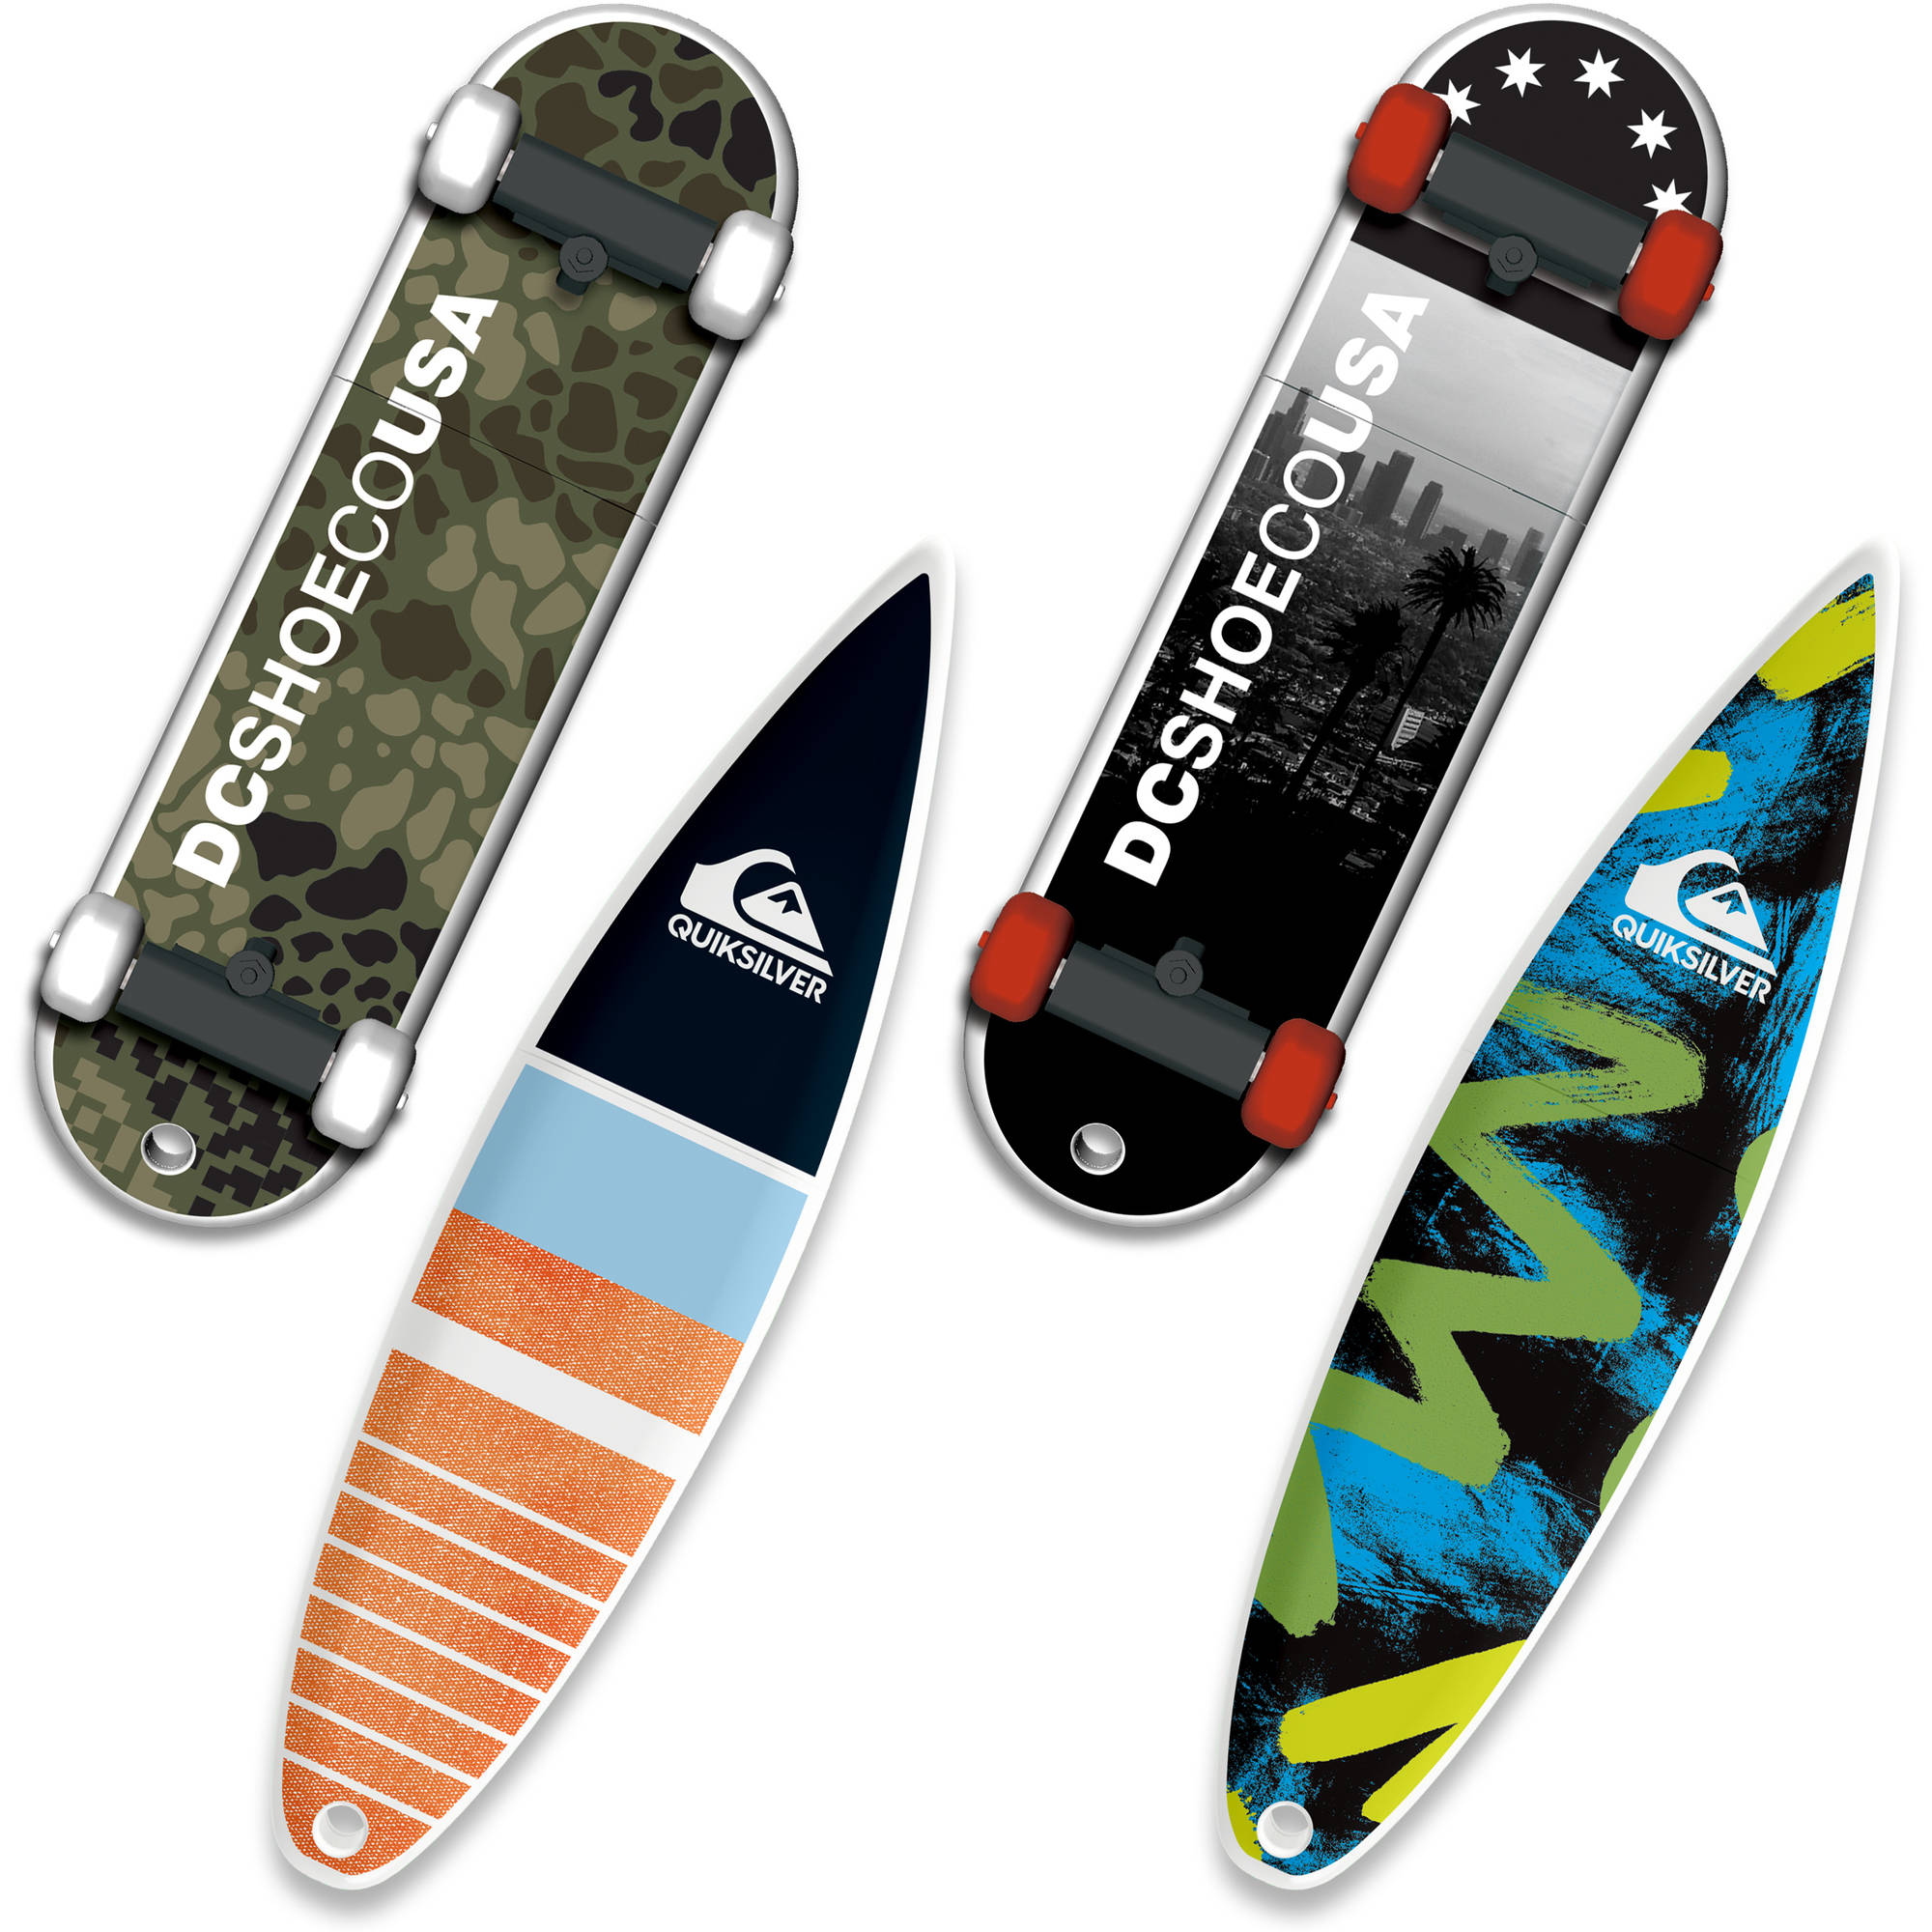 16GB EP ASD USB, DC Shoes SkateDrive and Quiksilver SurfDrive, 4-Pack